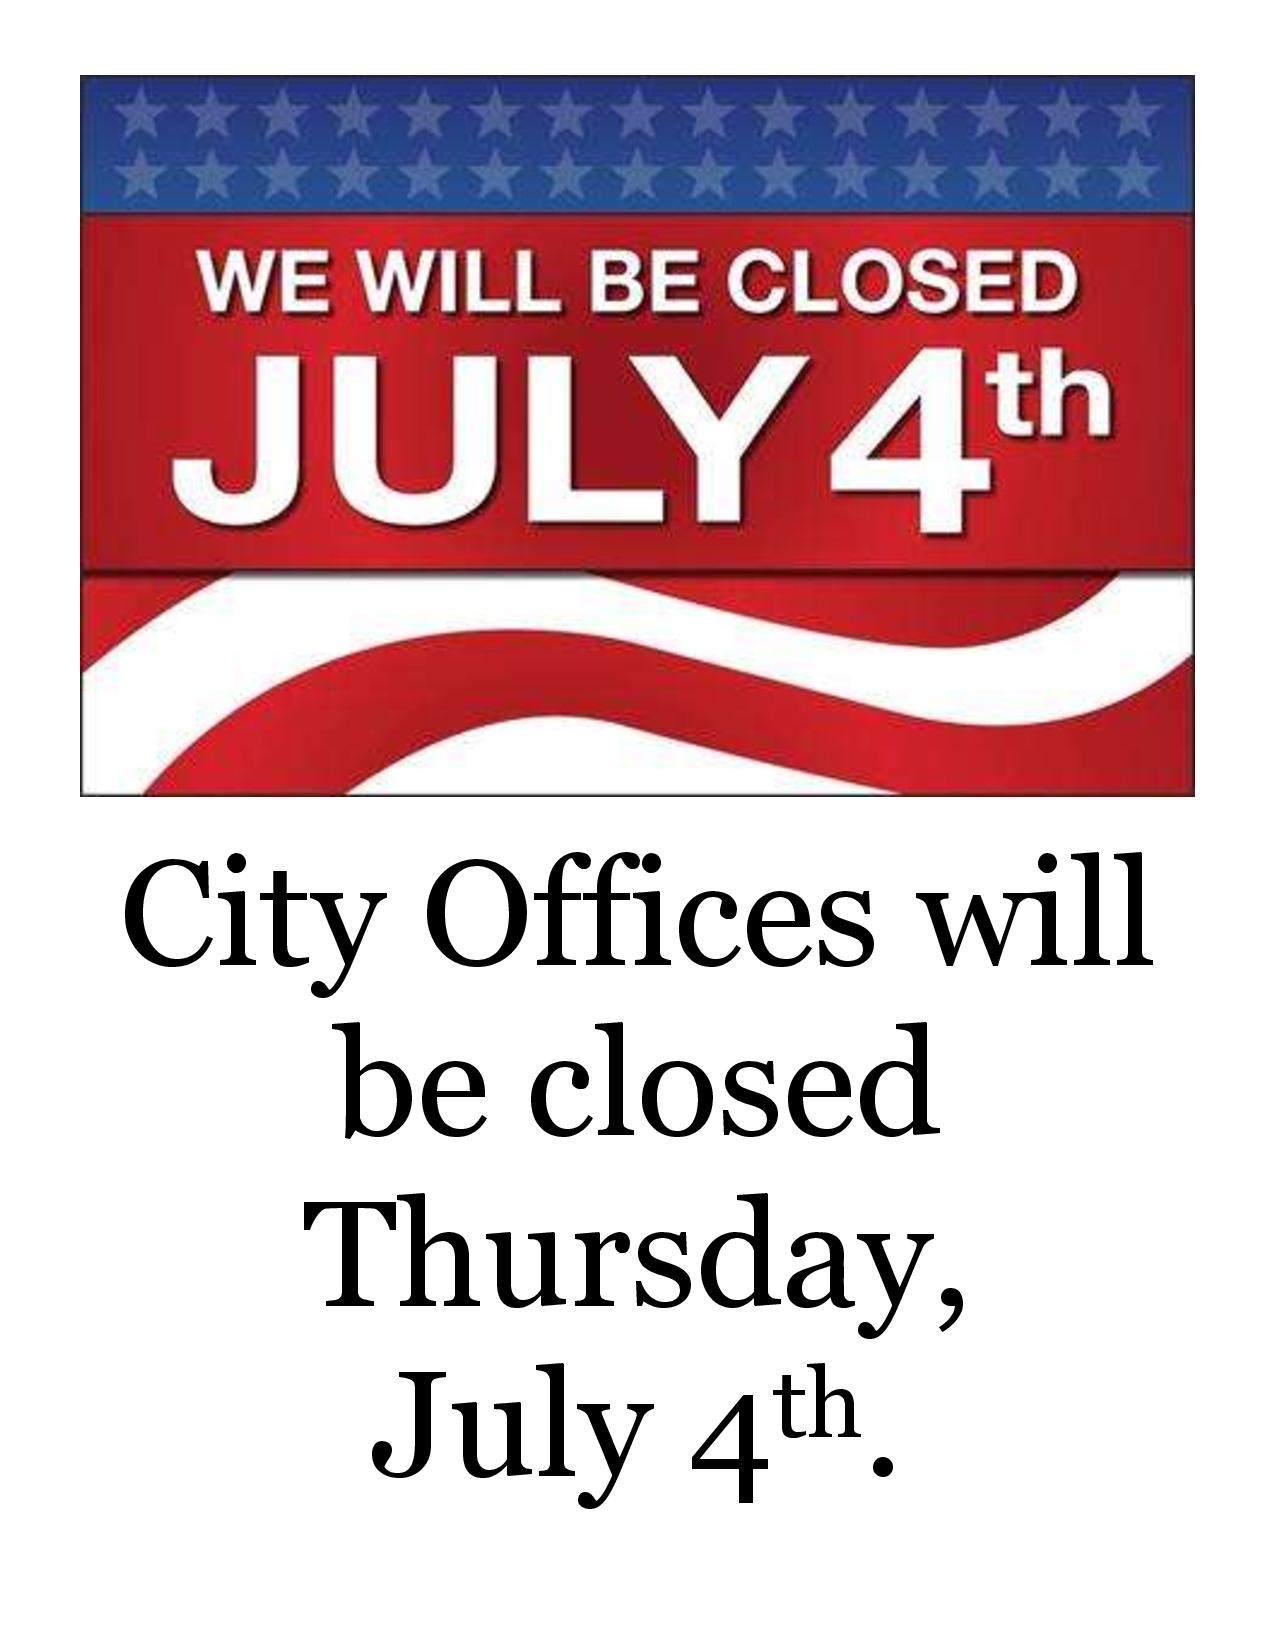 City Offices will be closed Thursday-page-001.jpg